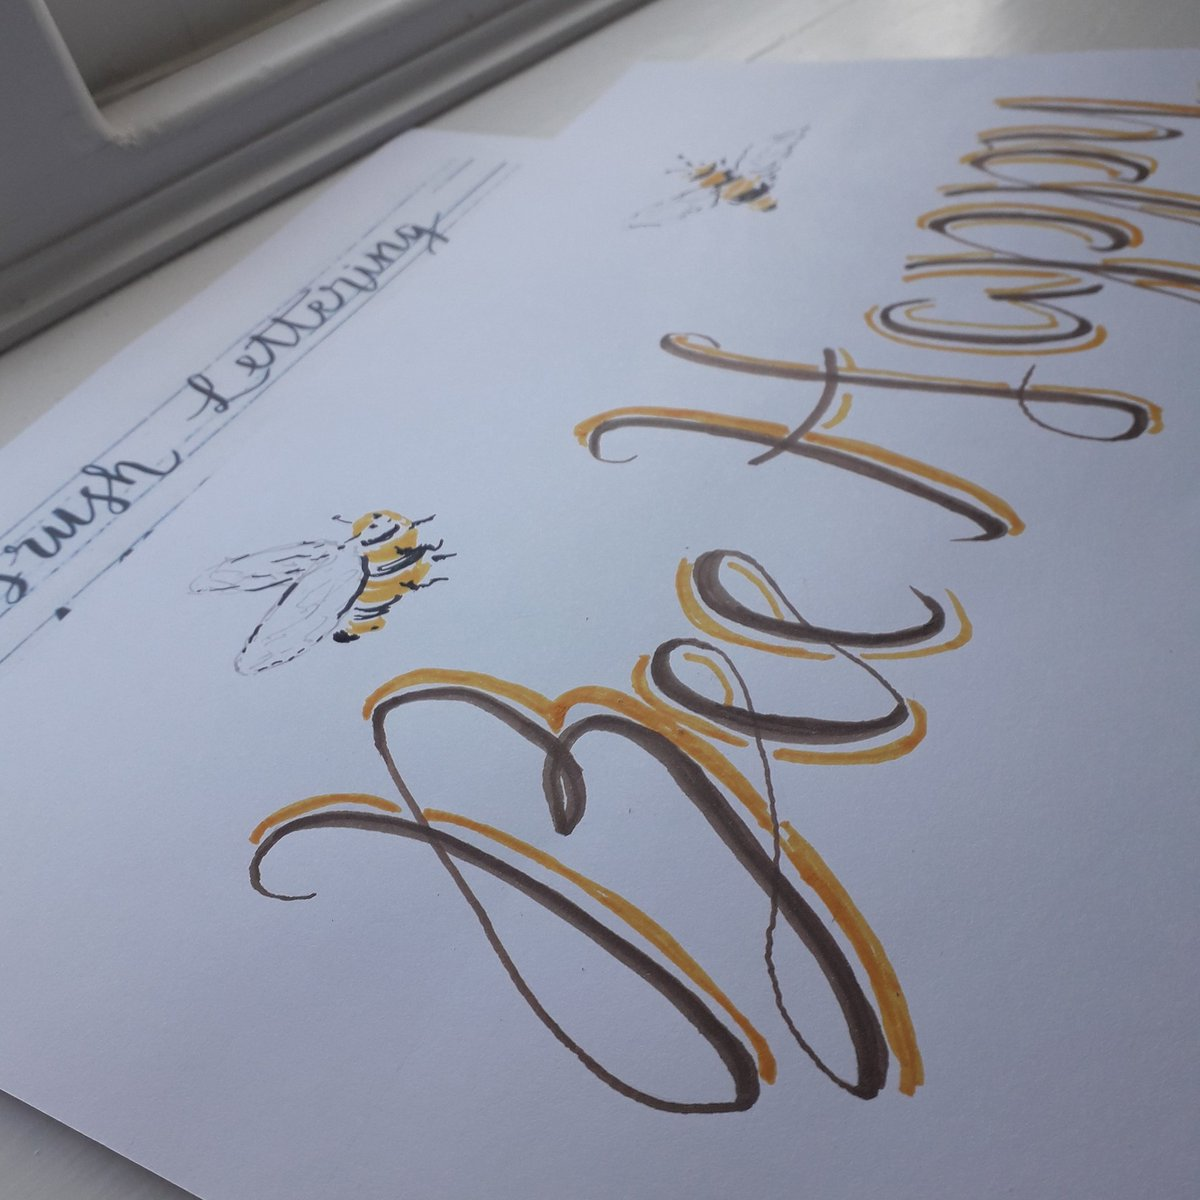 Happy #nationalhandwritingday! I enjoyed a lovely free brush lettering online class from The Artery Art Shop and Classes this morning! I've not got it right yet (I lost focus so the shadowing etc needs to be more consistent) but had great fun! Thanks! #LymphomaLass xx #beehappy